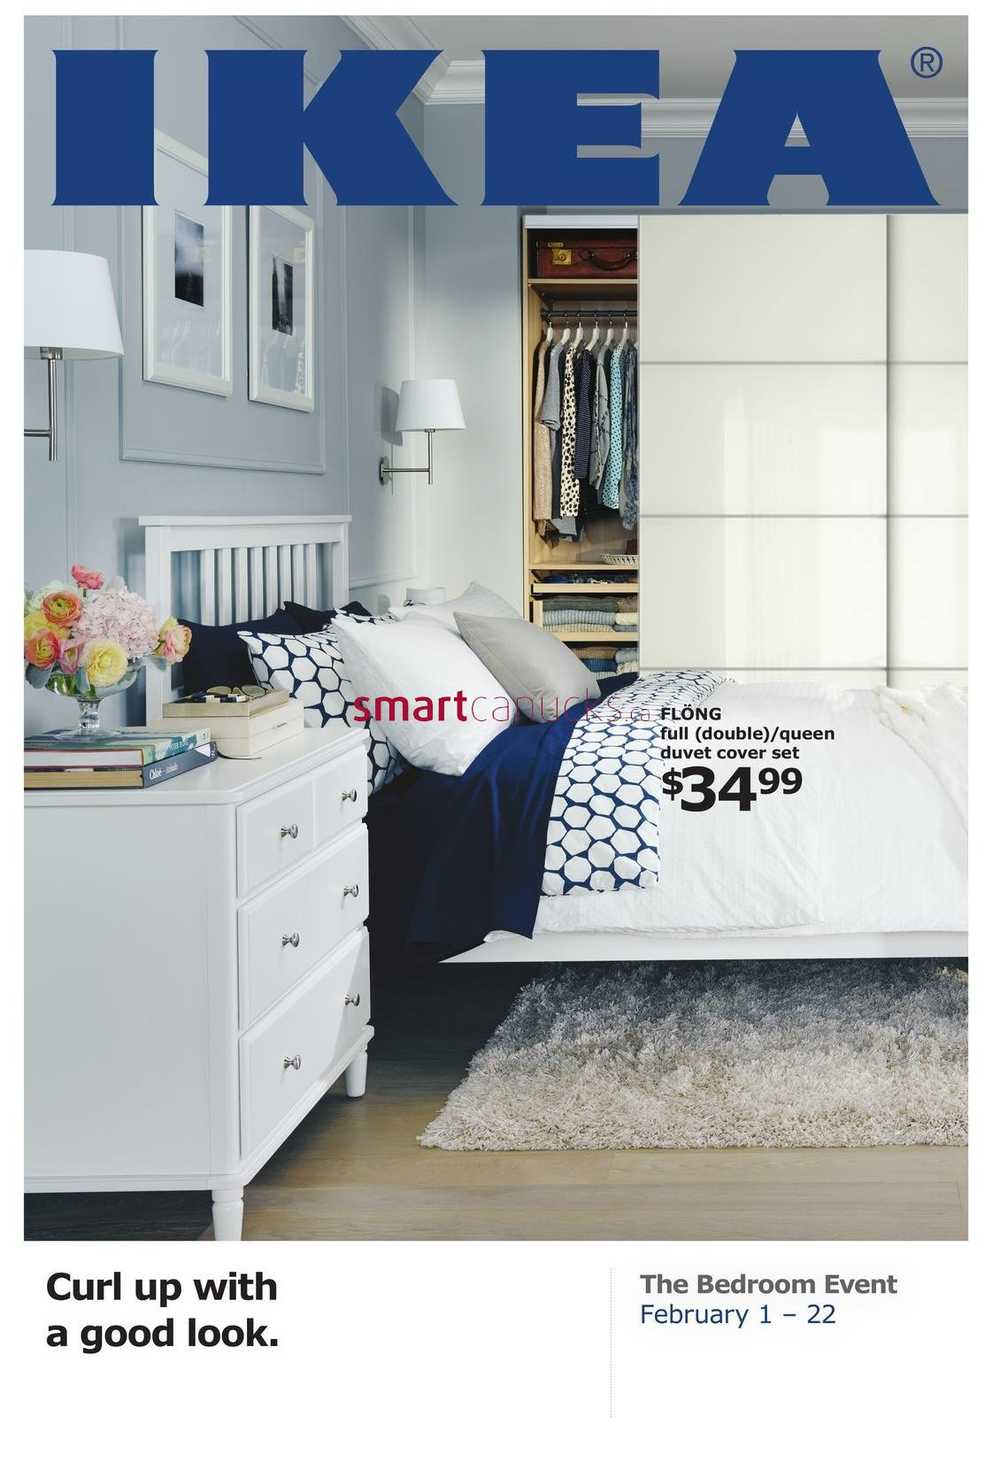 Ikea Bedroom Event Flyer February 13 to 13